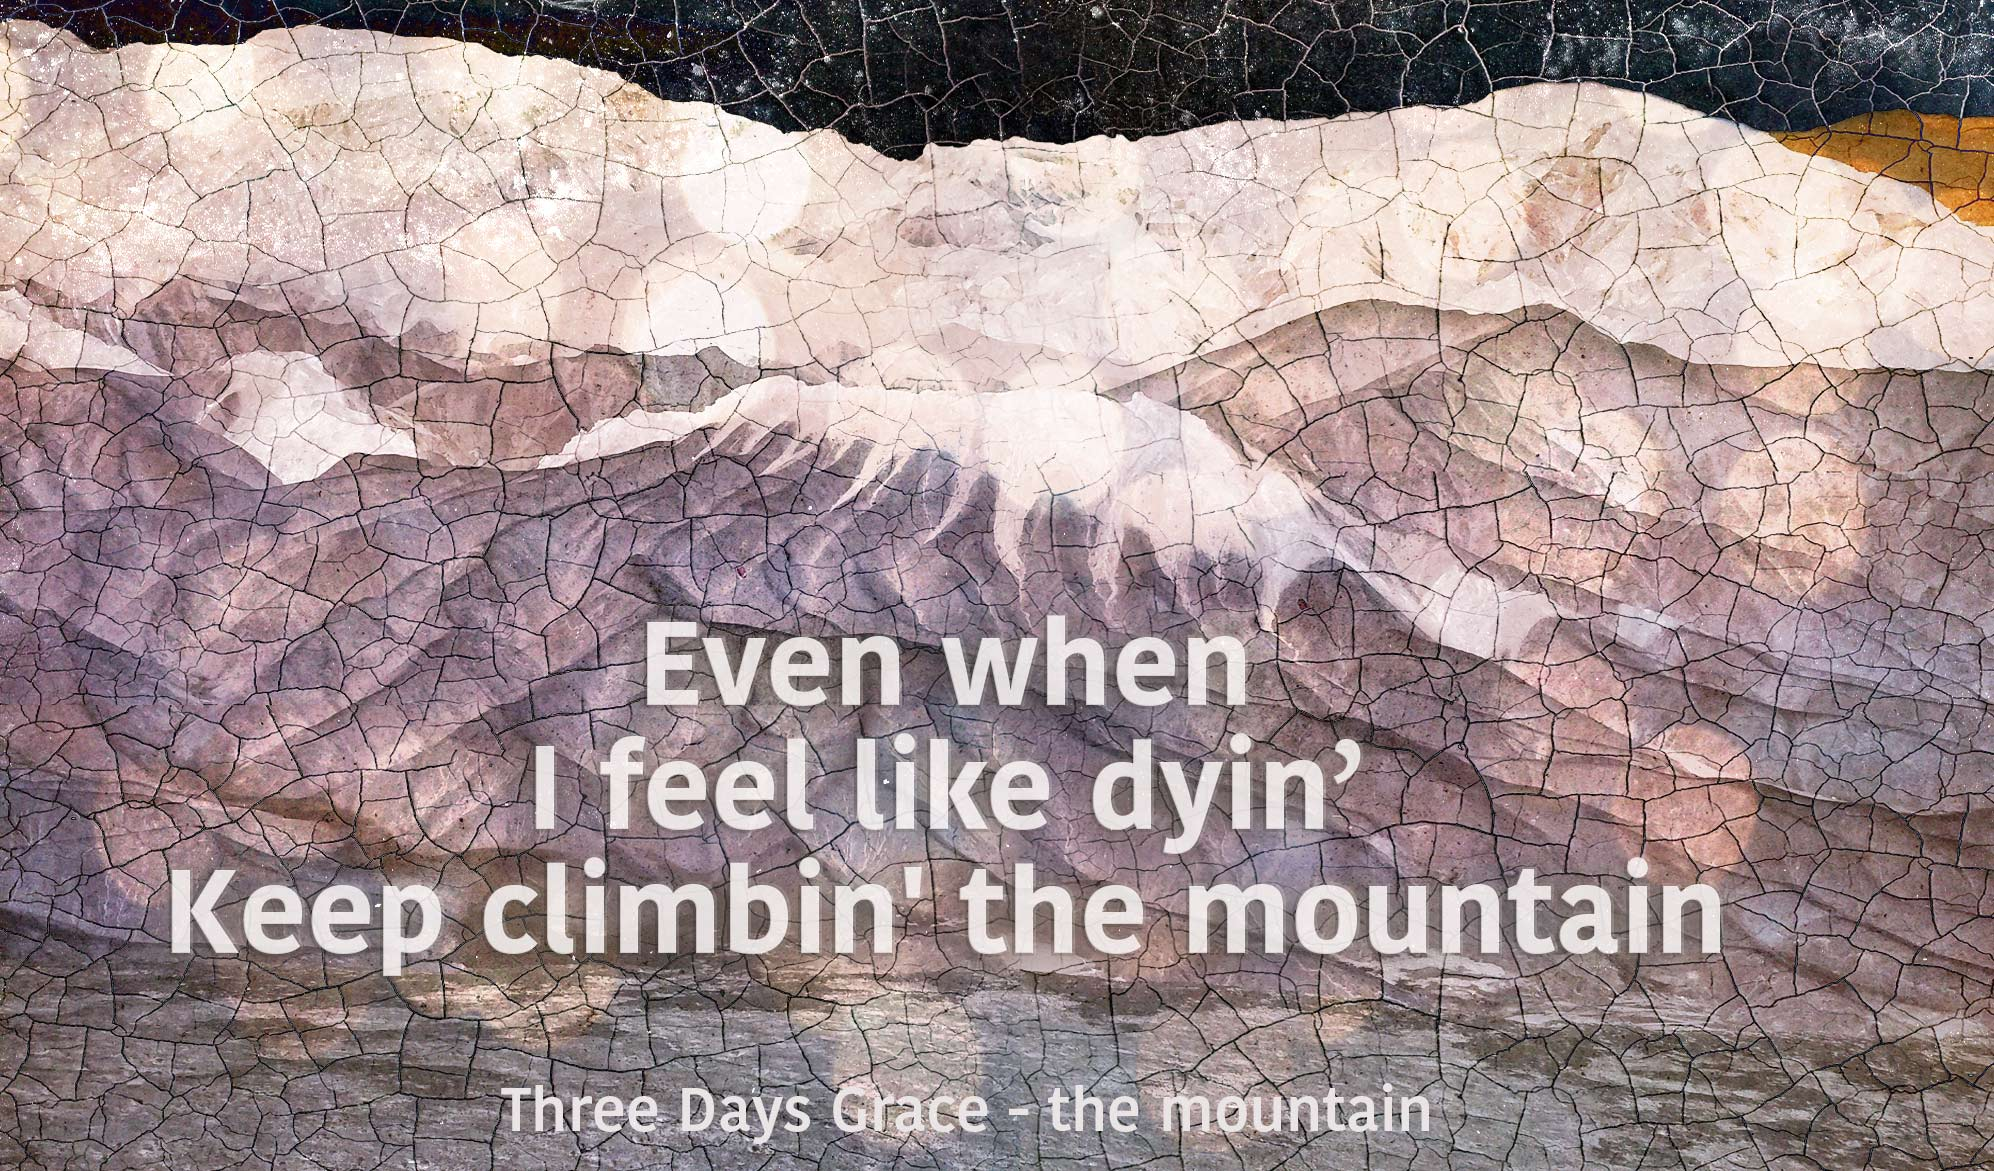 daily inspirational quote image: painterly image of a mountain, with a cracked surface